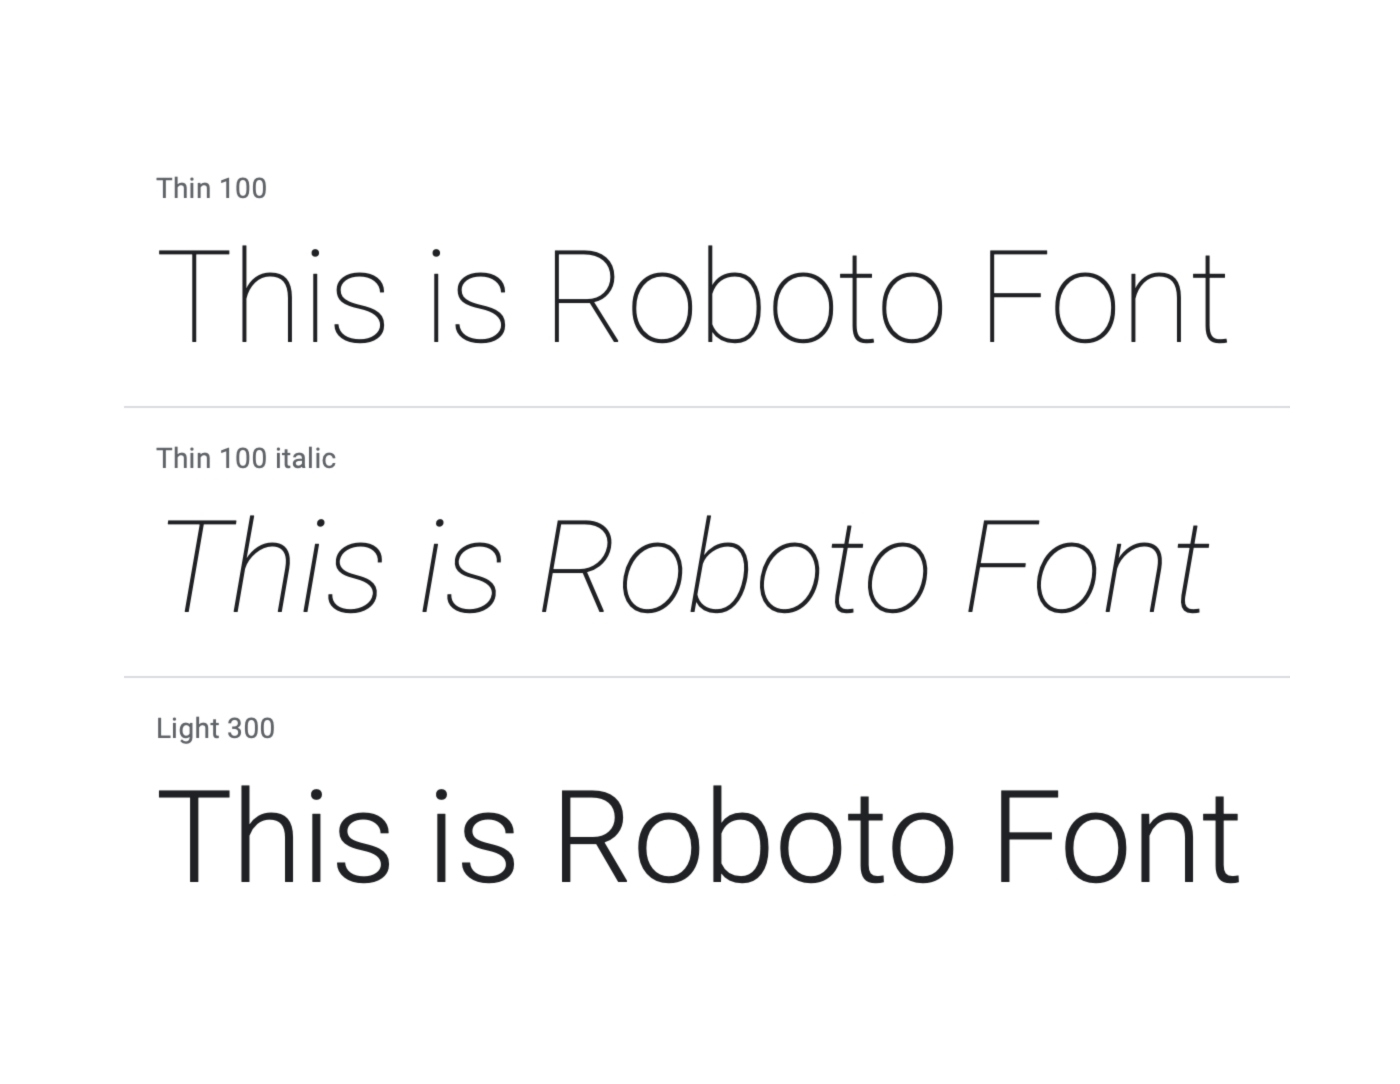 Roboto font family. Image by Material Design